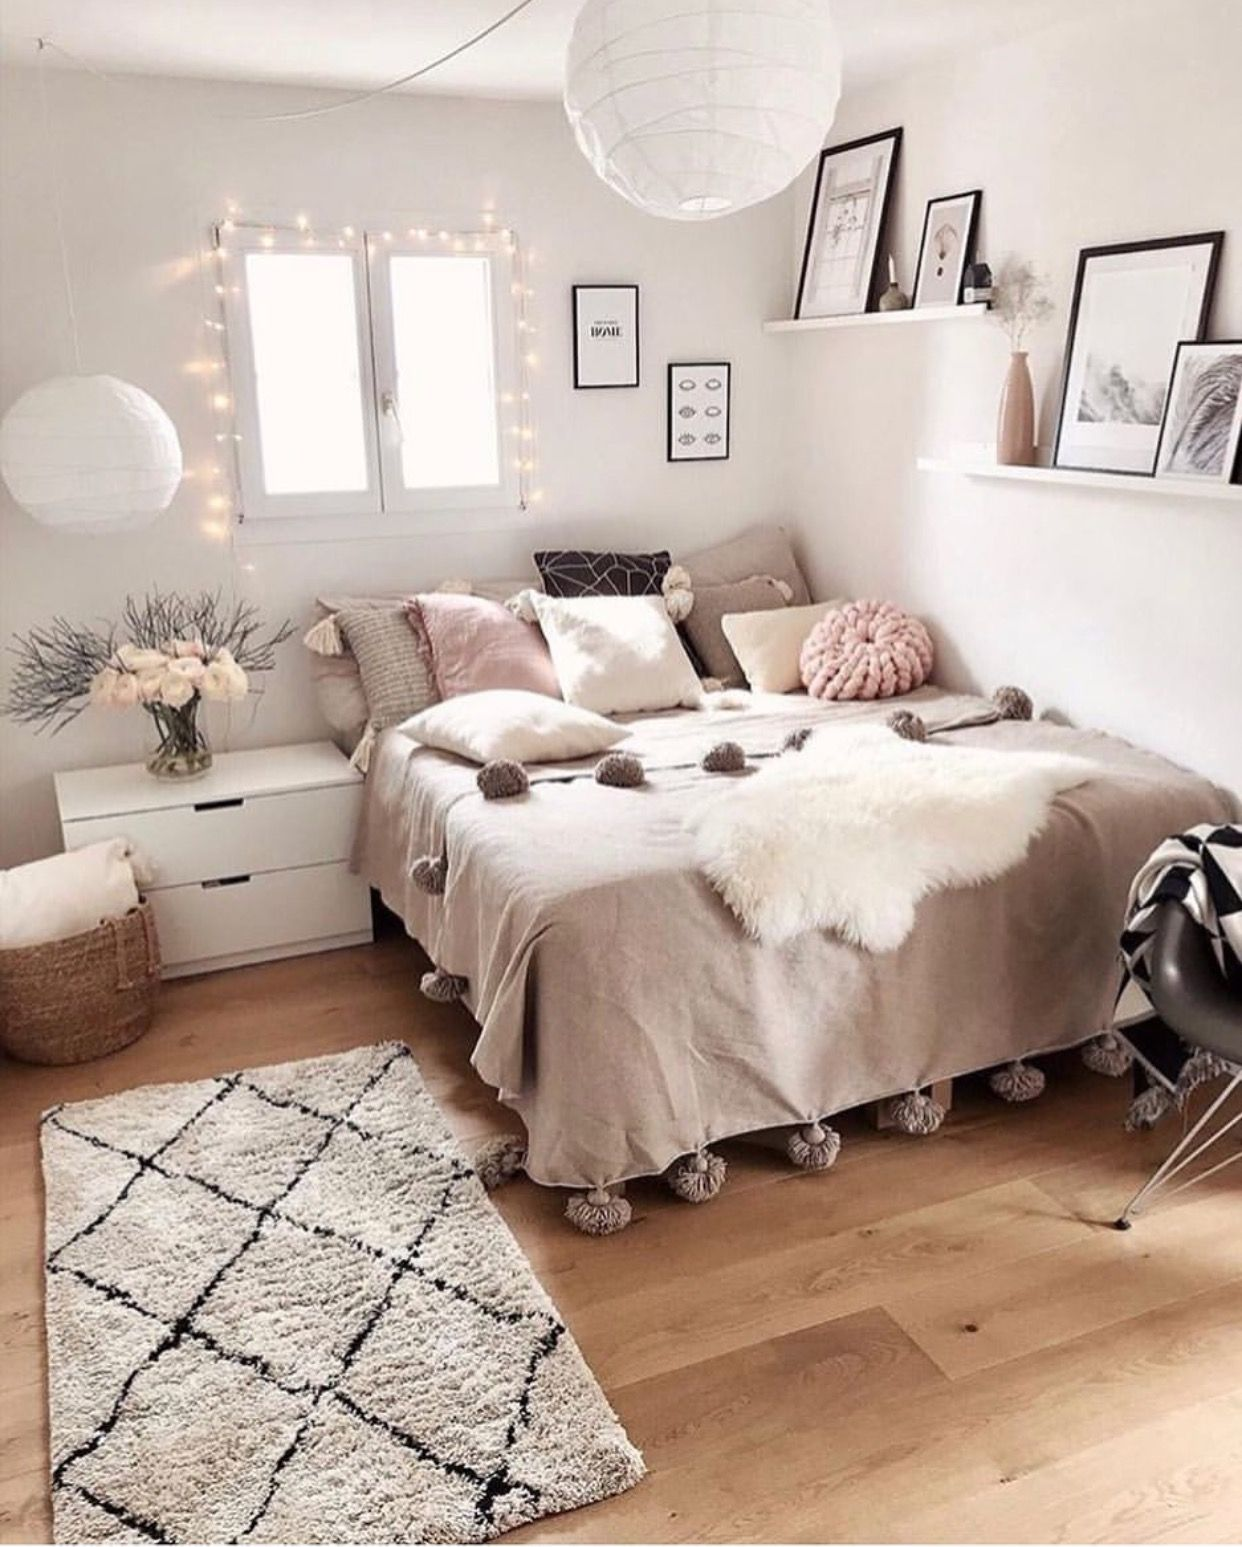 Homestylepassion Https Www Instagram Com P Bvhhpybhq7m Room Inspiration Bedroom Room Decor Bedroom Decor